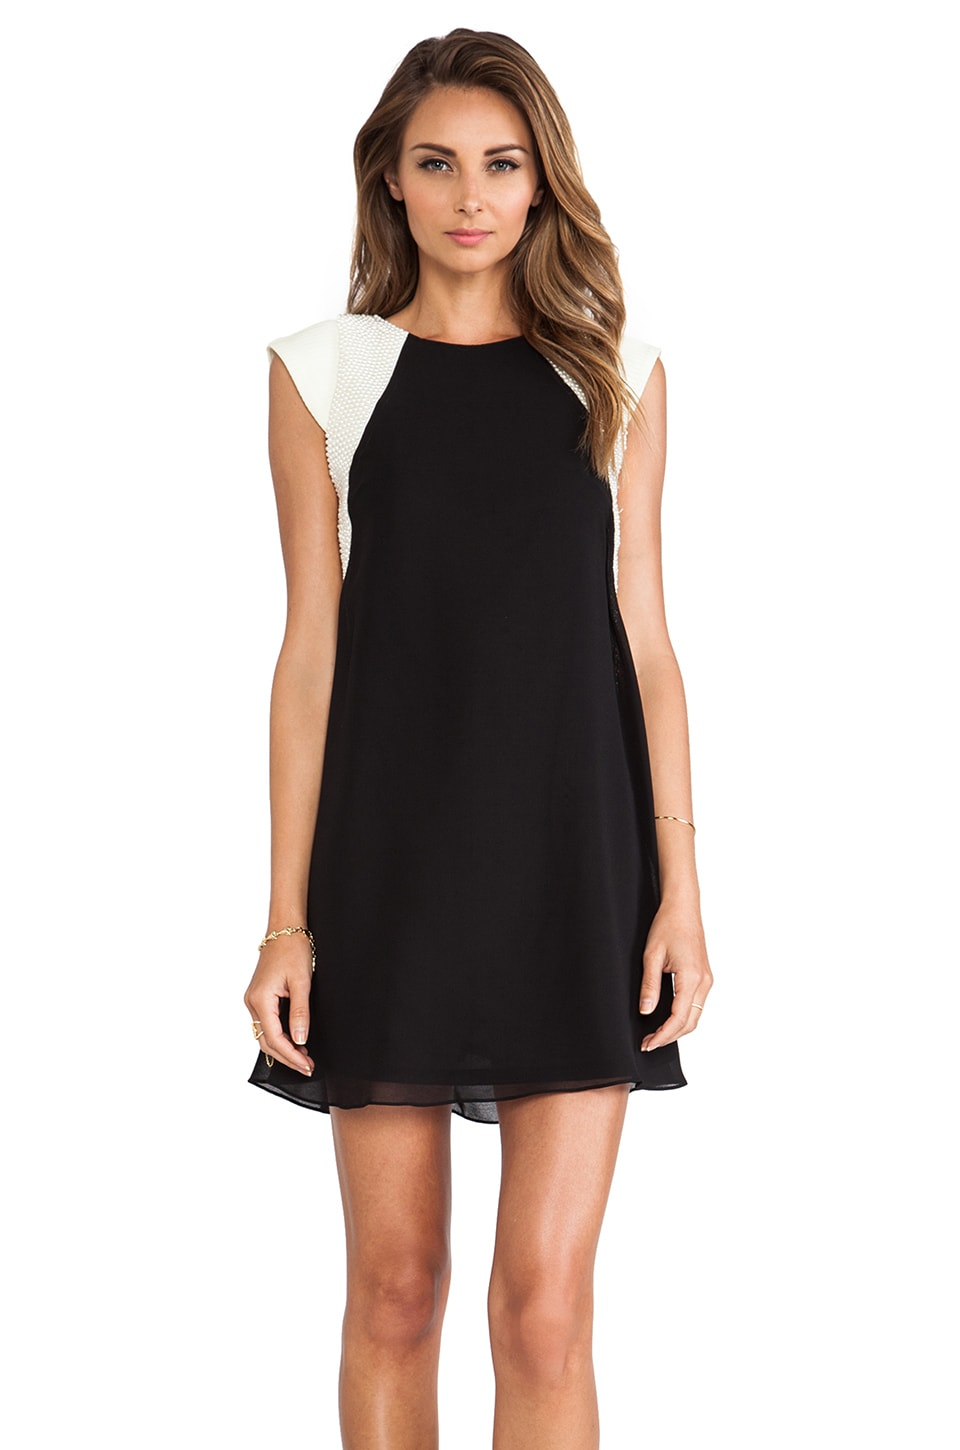 TFNC London Jewel Pearl Dress in Black